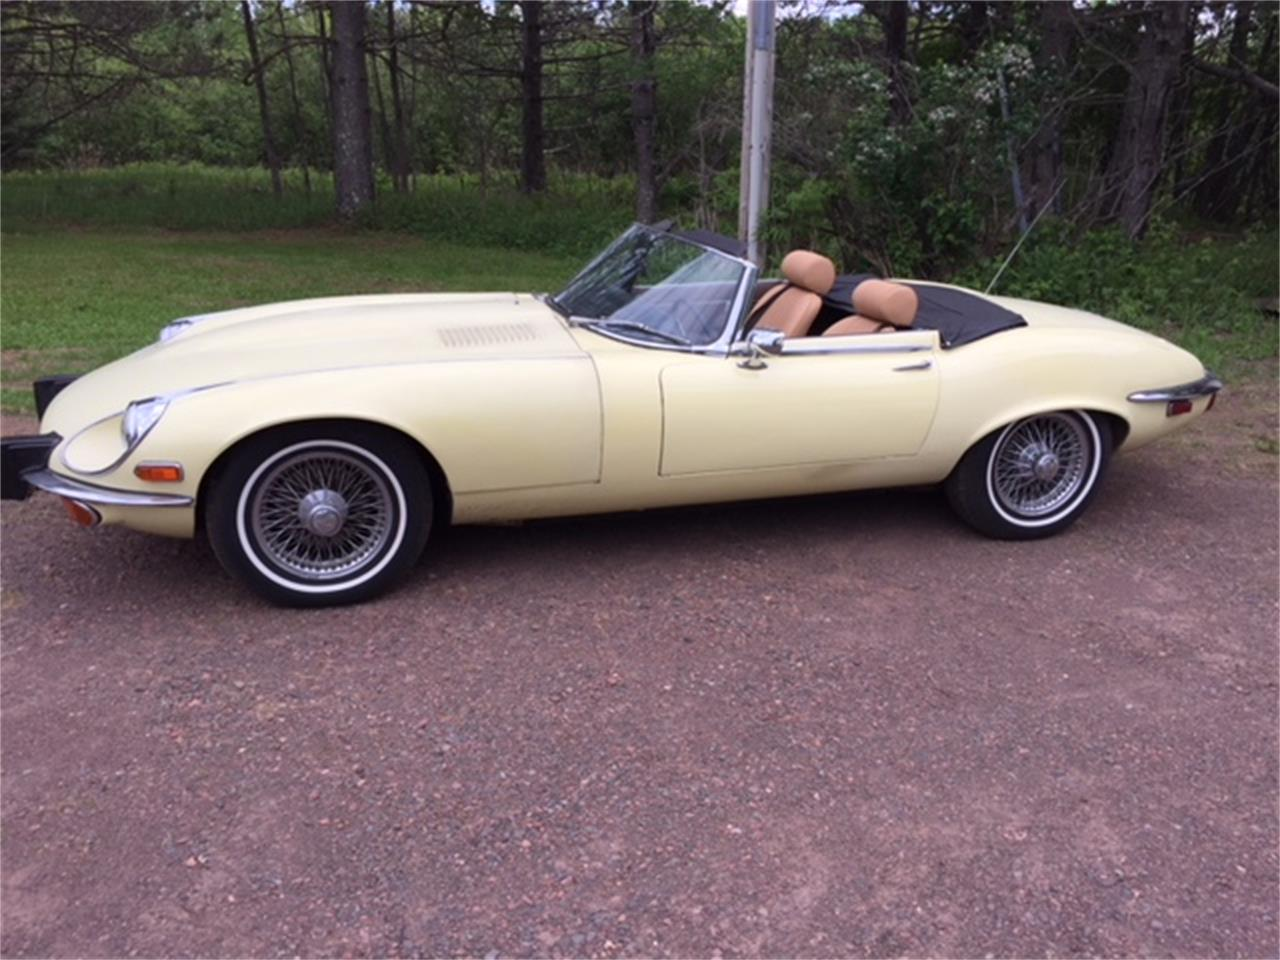 Large Picture of 1974 Jaguar E-Type located in Minnesota - $82,500.00 Offered by a Private Seller - Q6T0